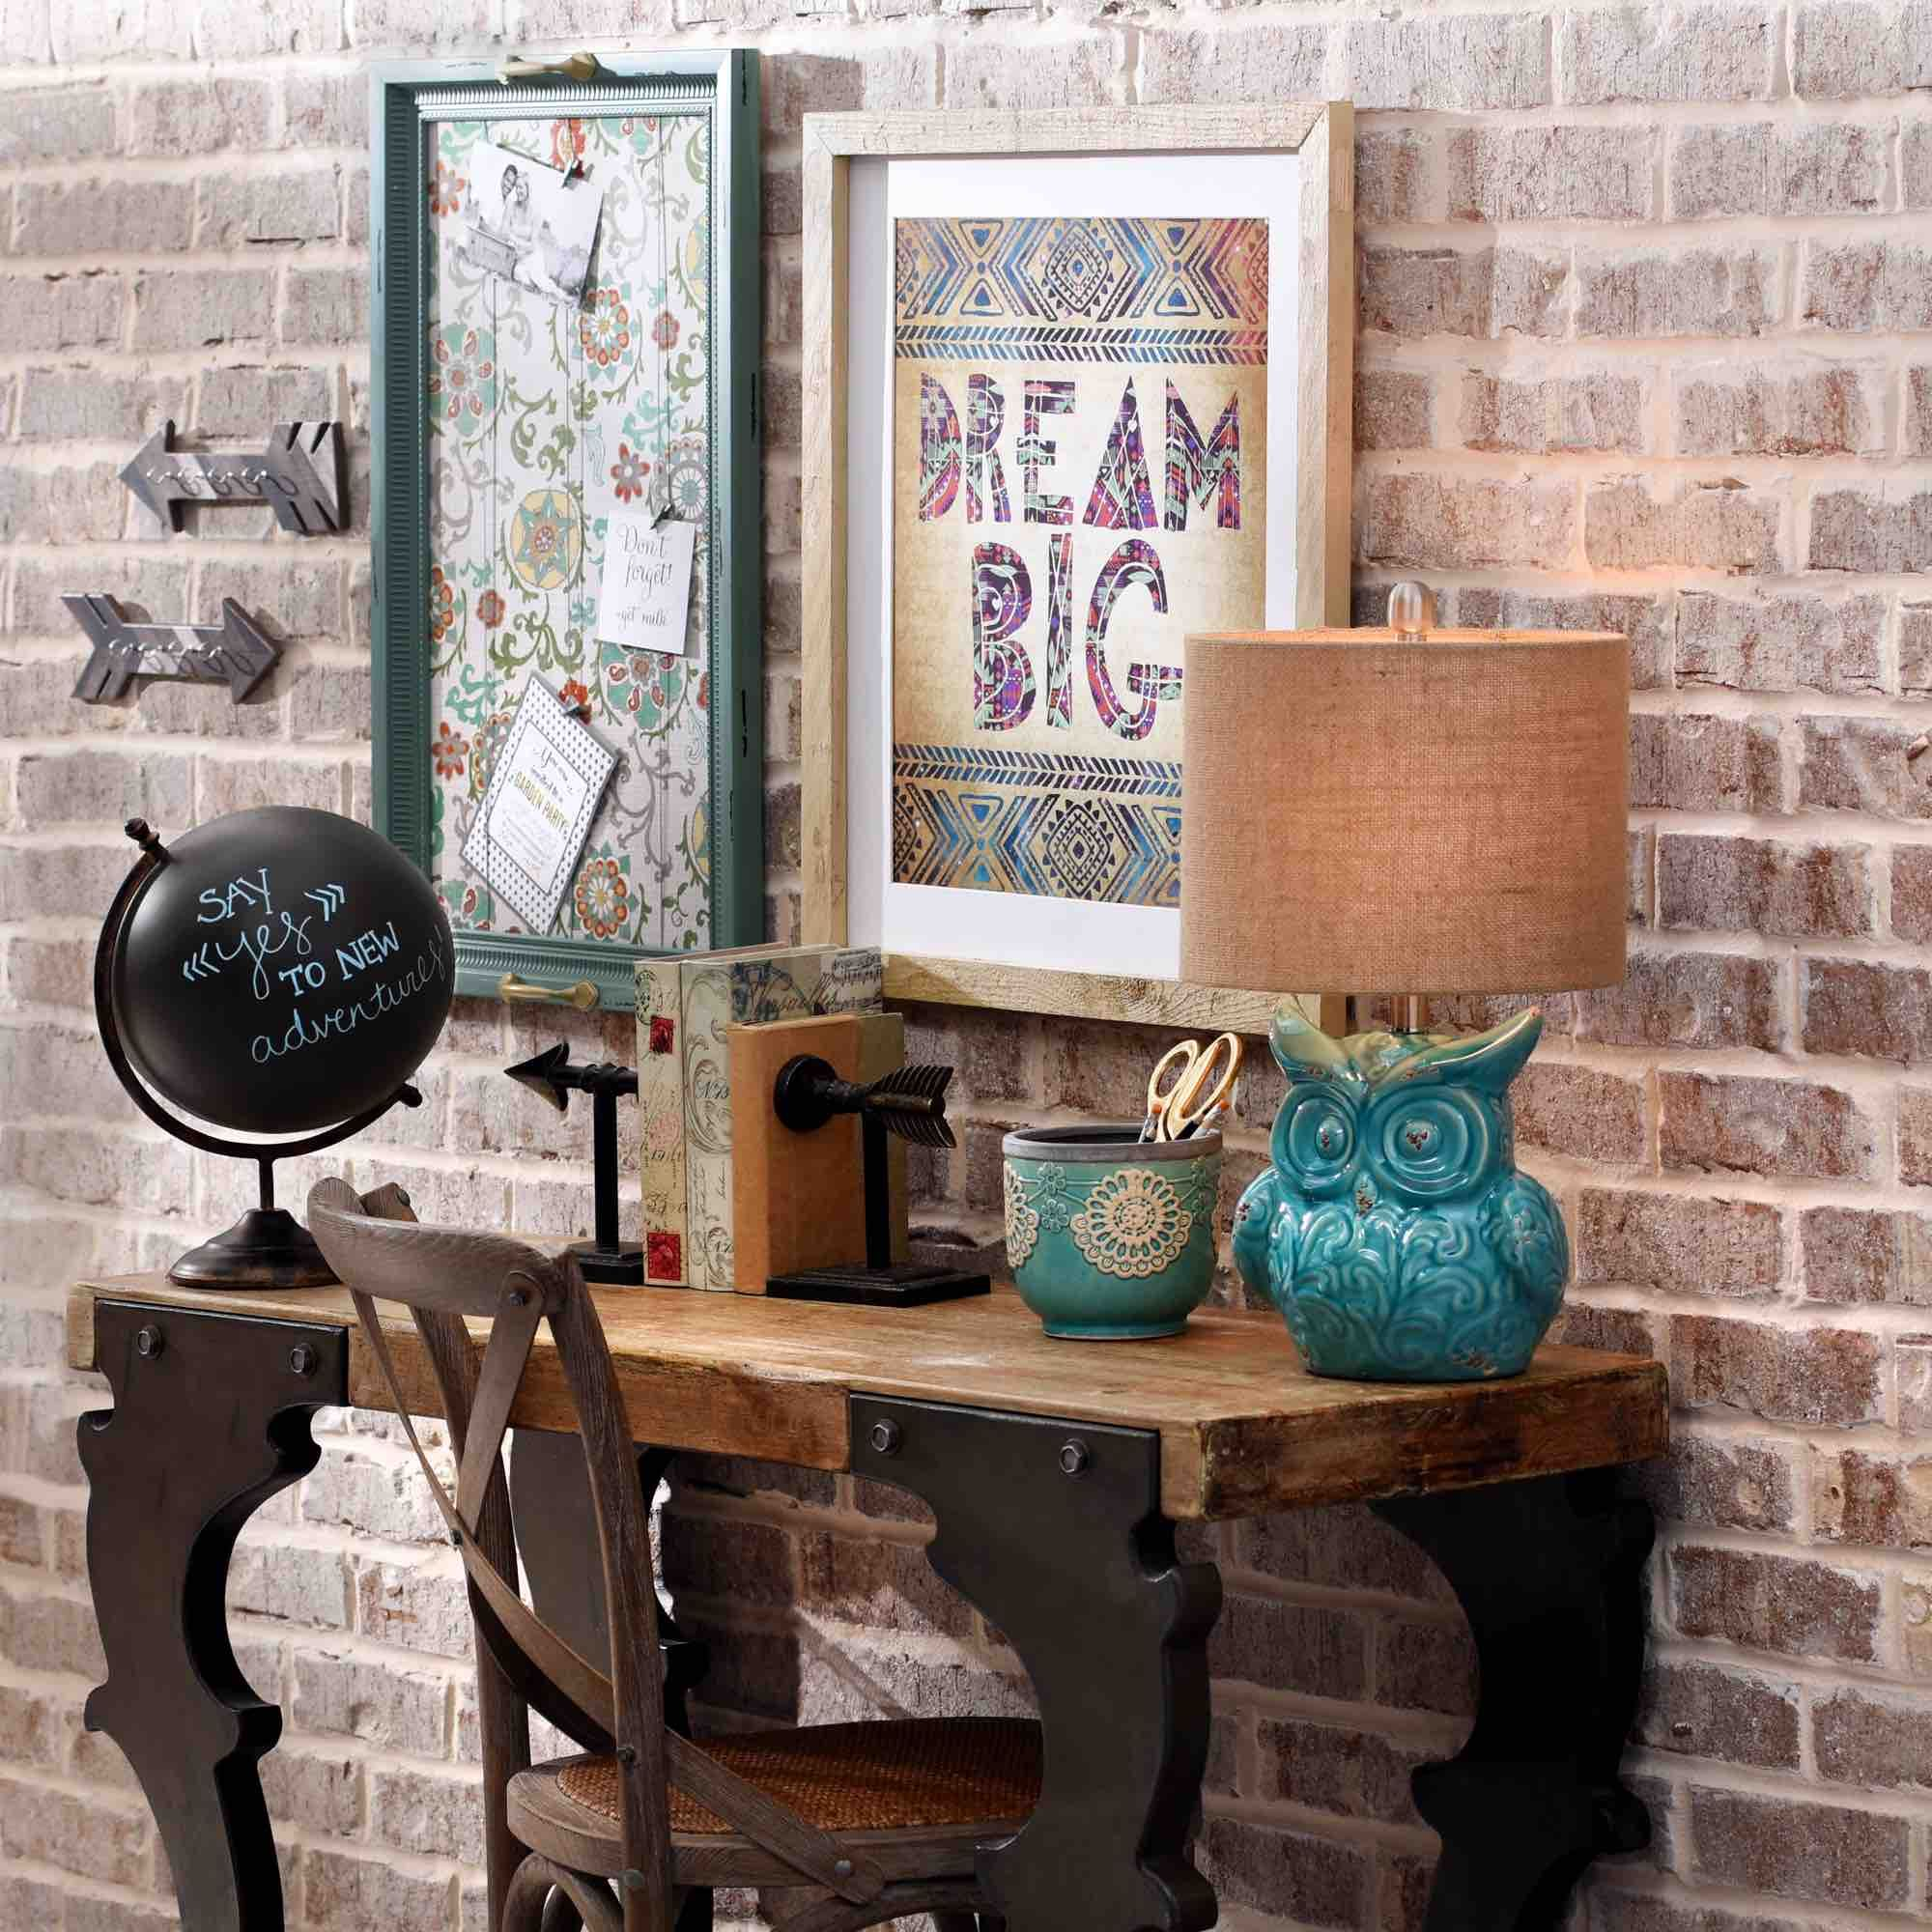 Unique Homedecor: Keep Your Home Interesting By Decorating With An Eclectic